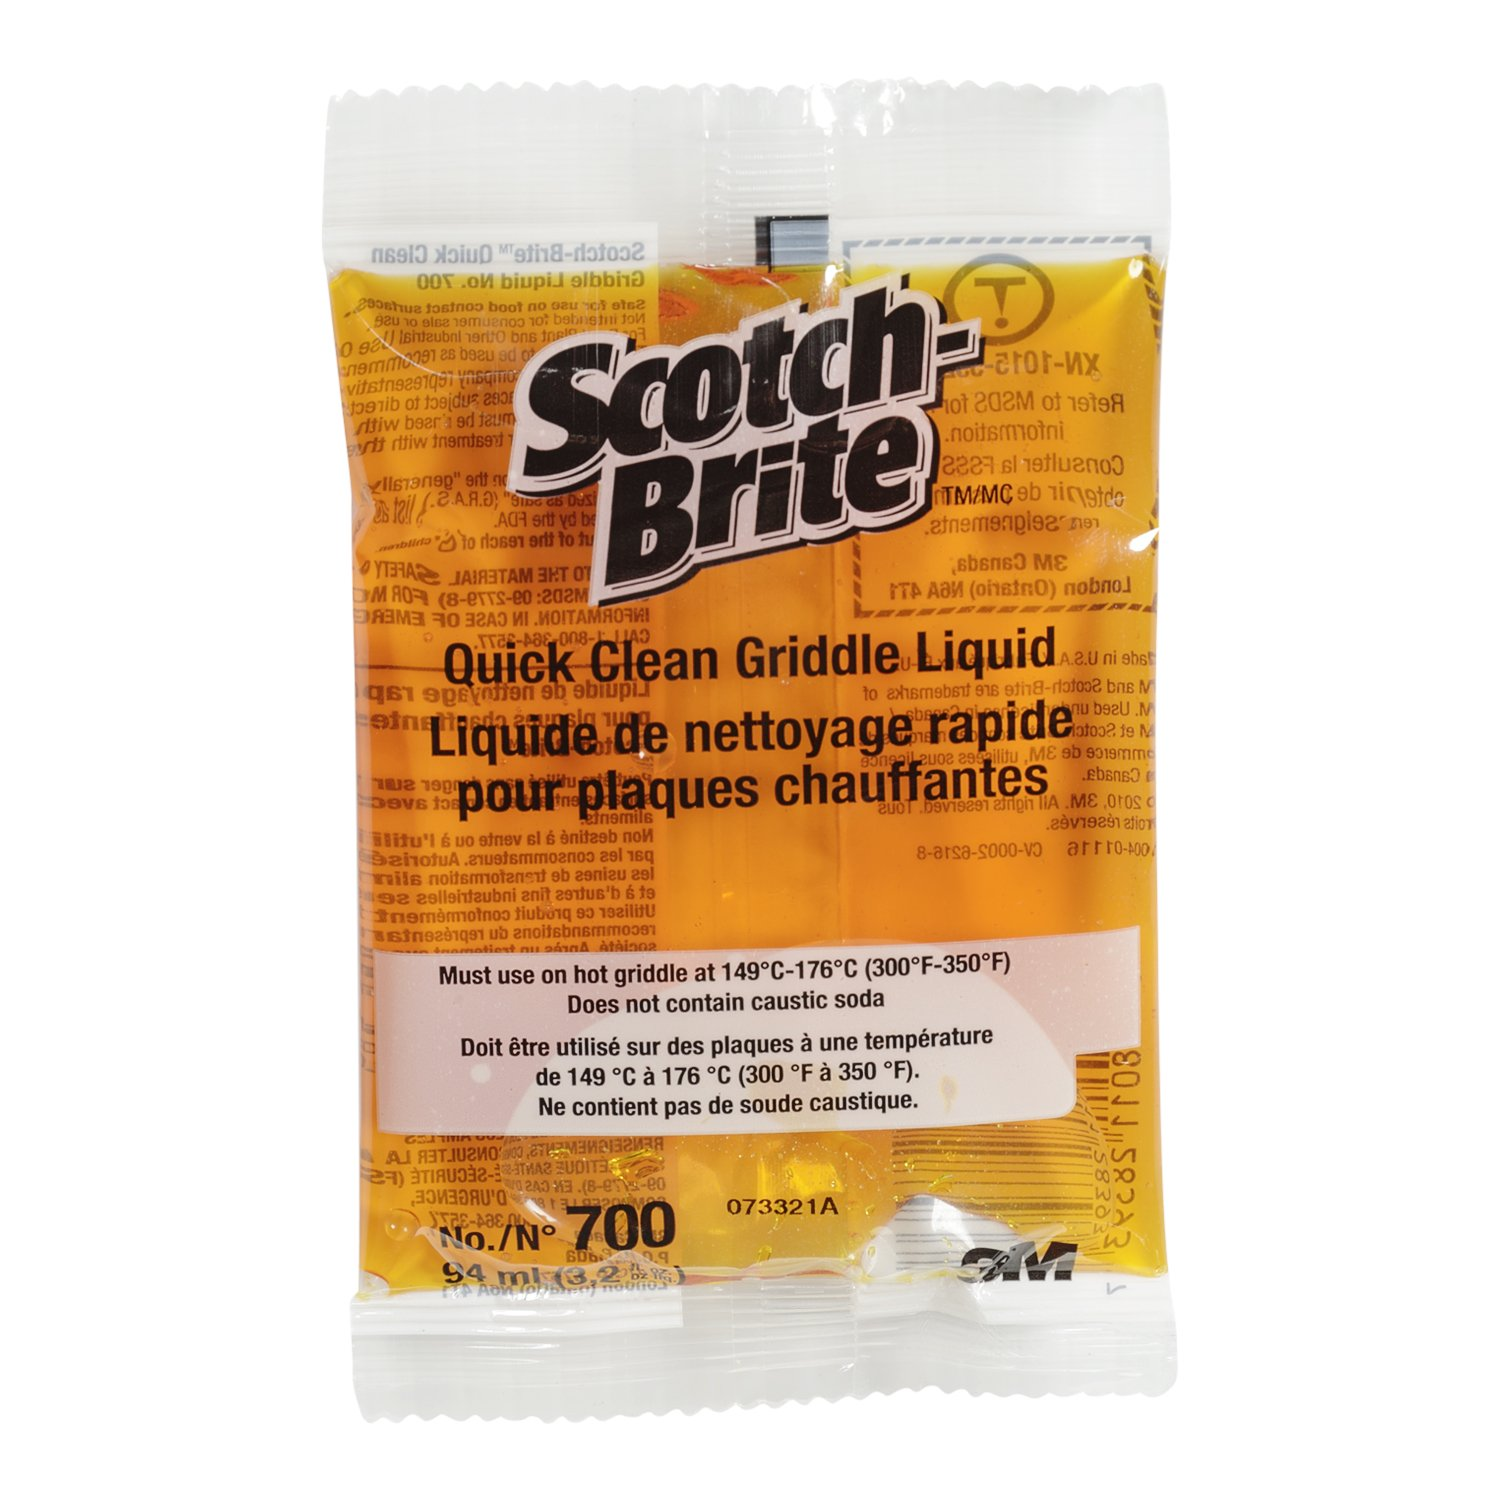 Scotch-Brite 700-40 Quick-Clean Griddle Liquid, 3.2-Ounce Packets (Case of 40)